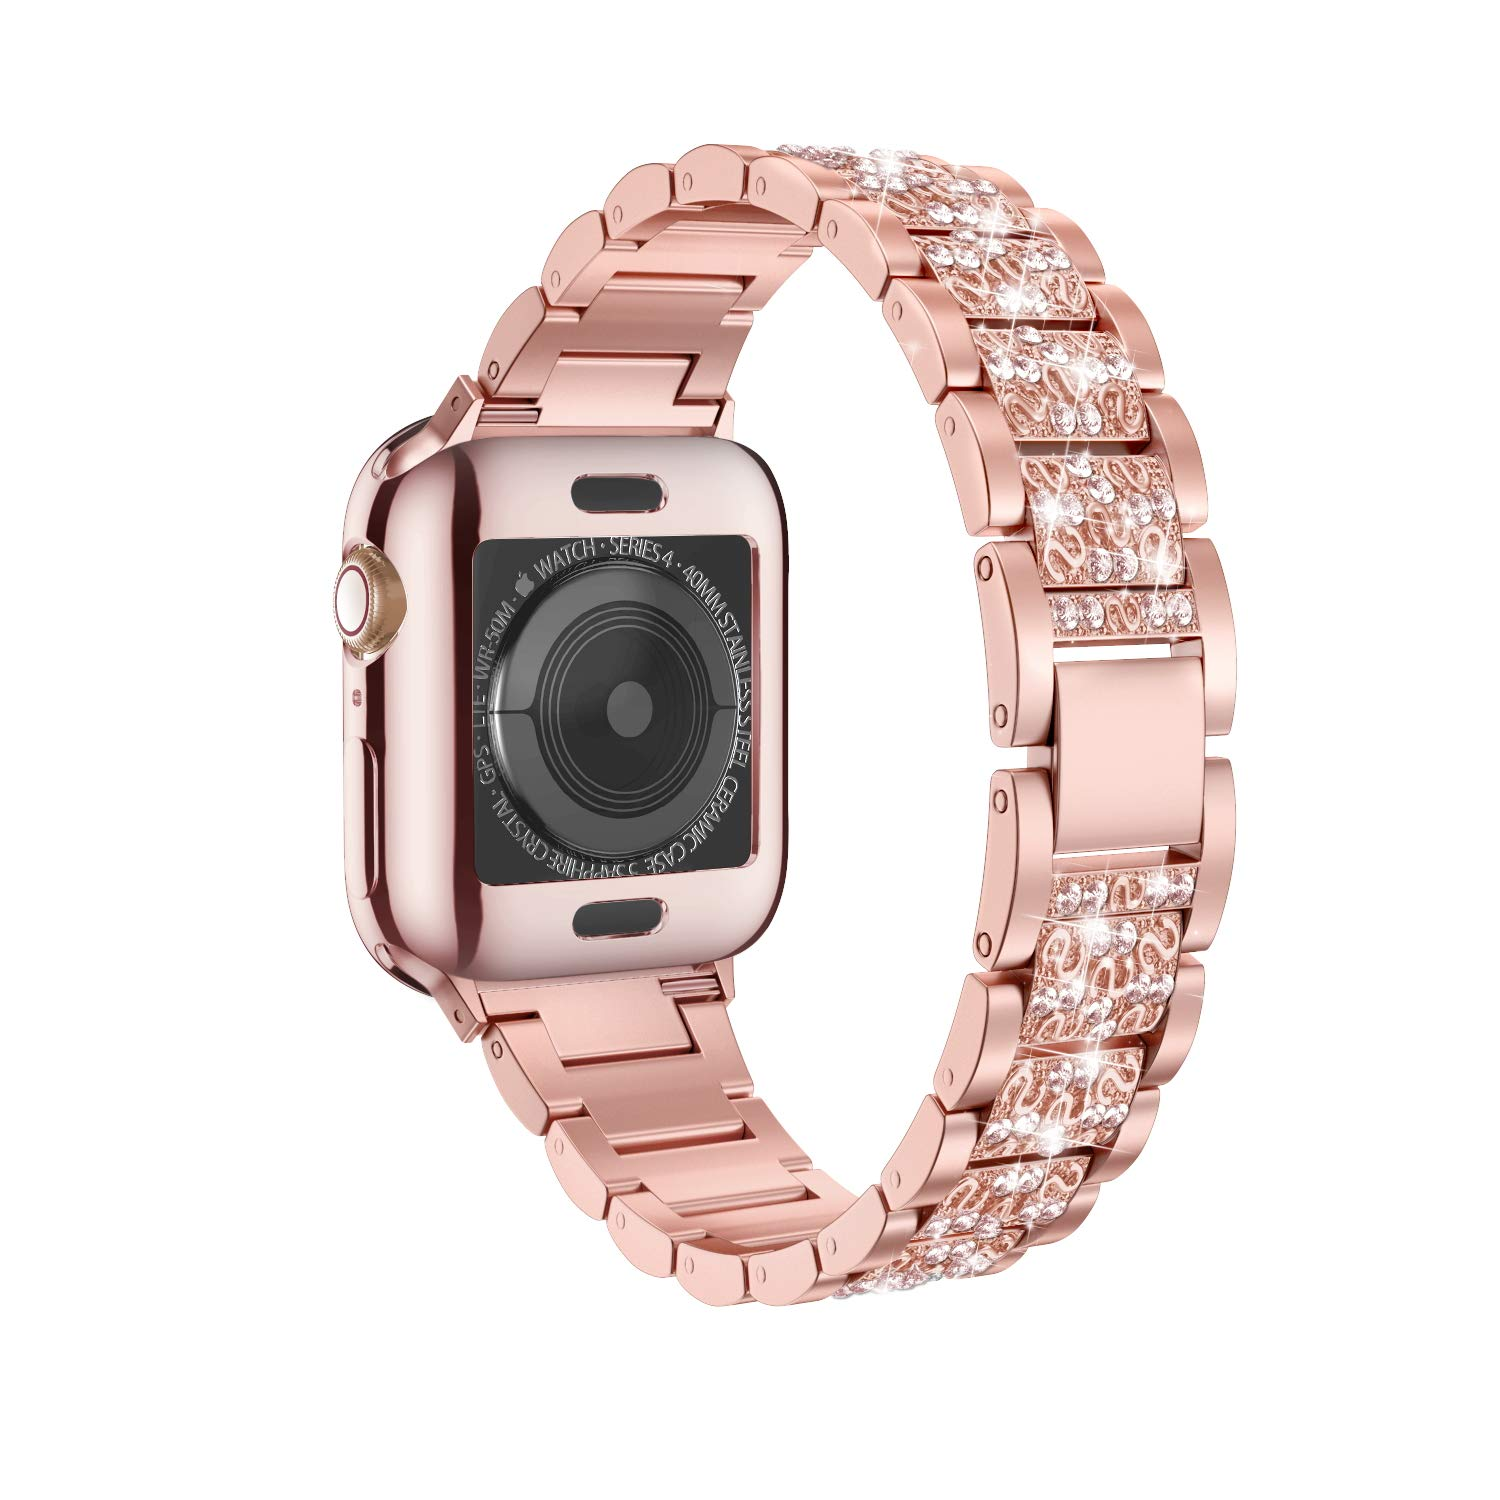 LELONG for Apple Watch Band 38mm 40mm 42mm 44mm Series 5 Series 4 3 2 1 with Case, Bling Replacement Bracelet iWatch Band, Diamond Rhinestone Stainless Steel Metal Wristband Strap by LELONG